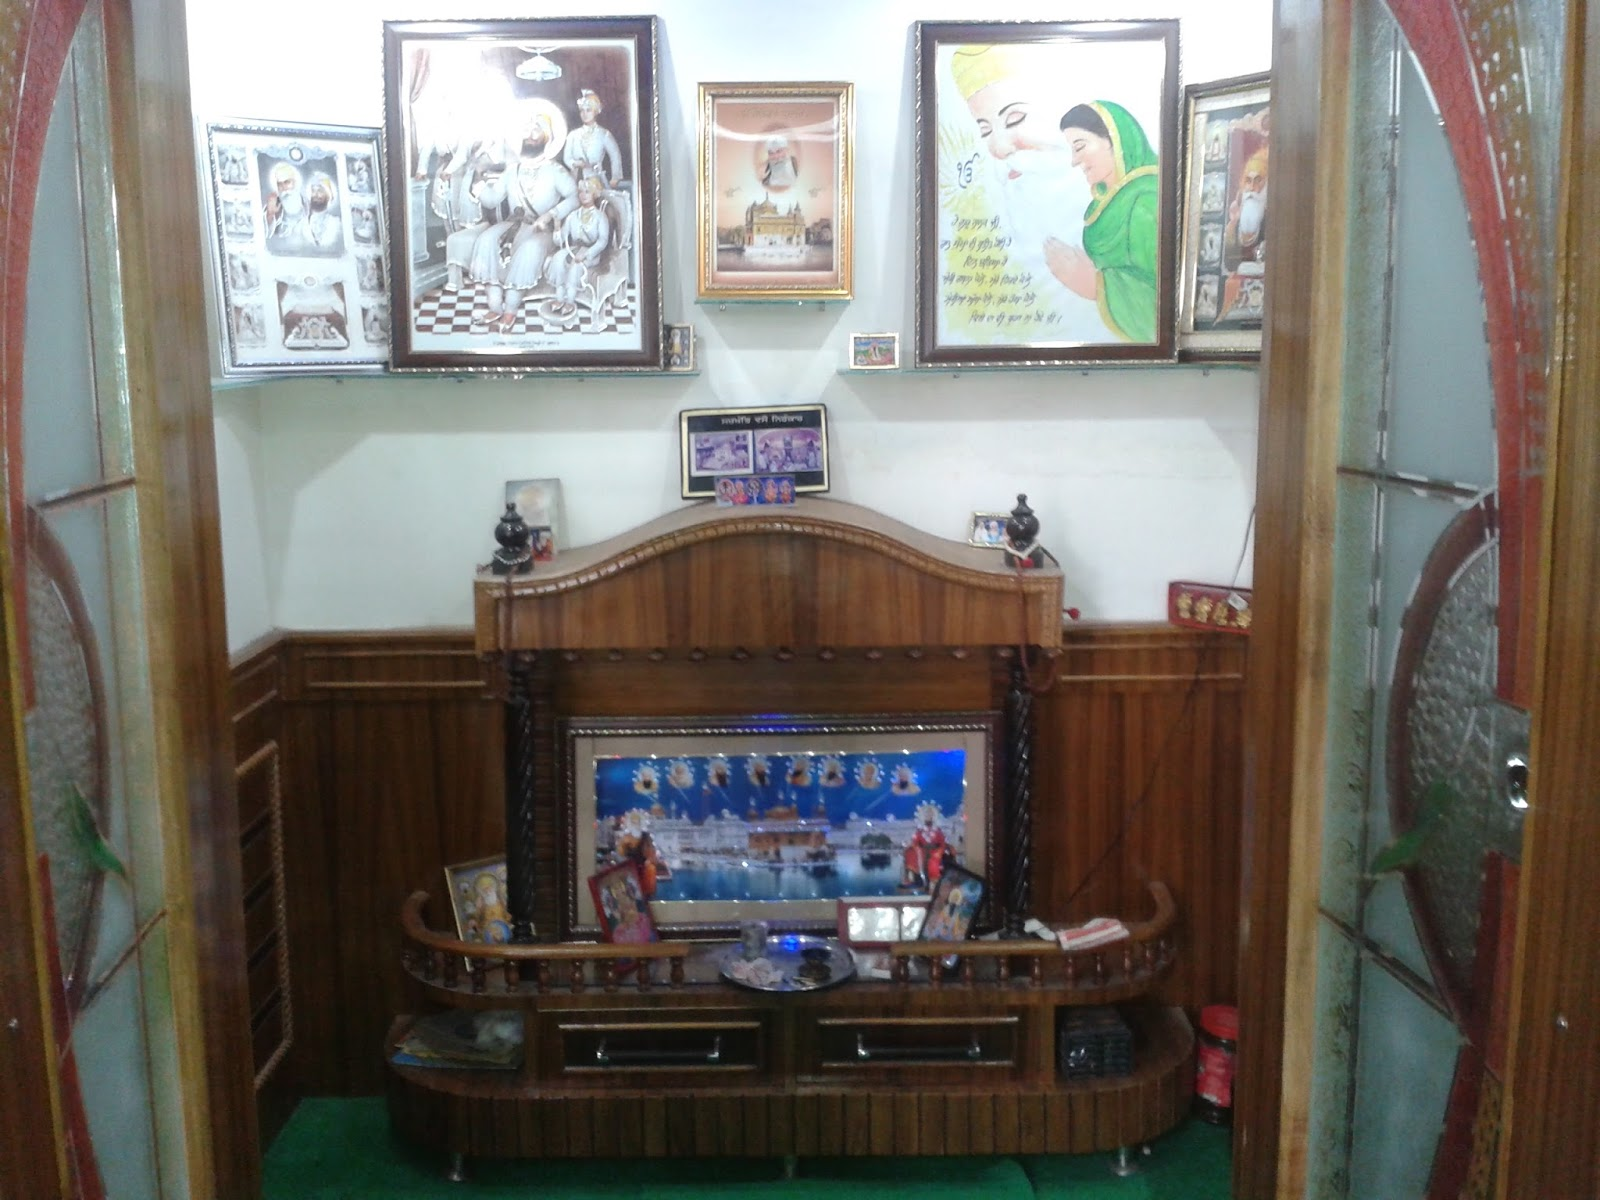 Mang Xa Hoi Viet Nam Woodwork Designs For Pooja Room Wooden Plans